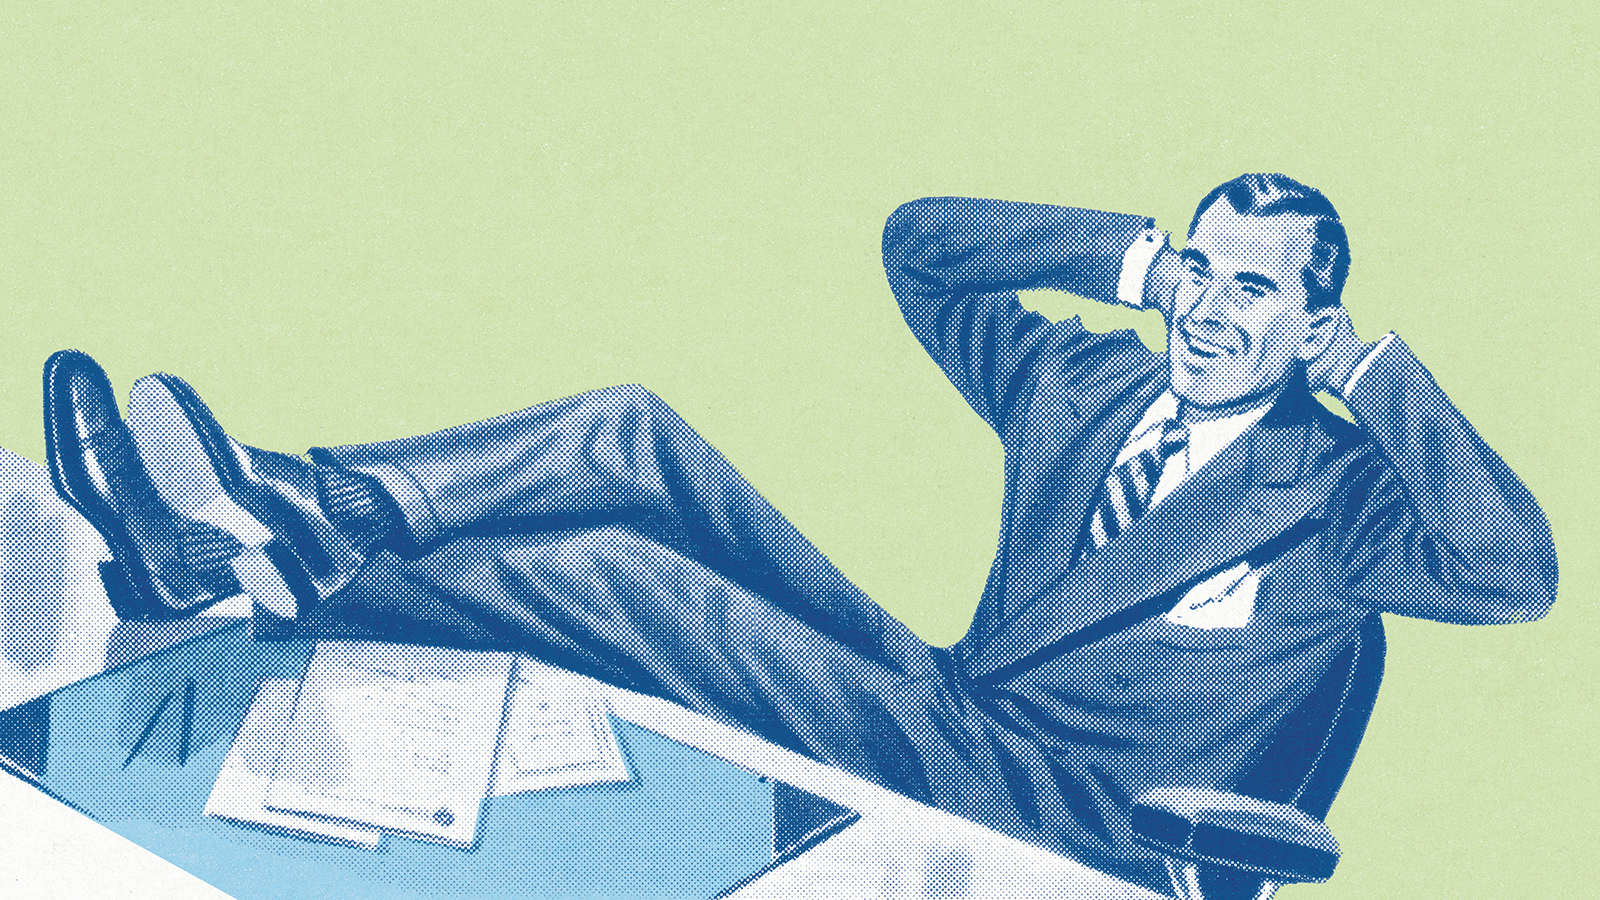 How to negotiate a job offer during the interview